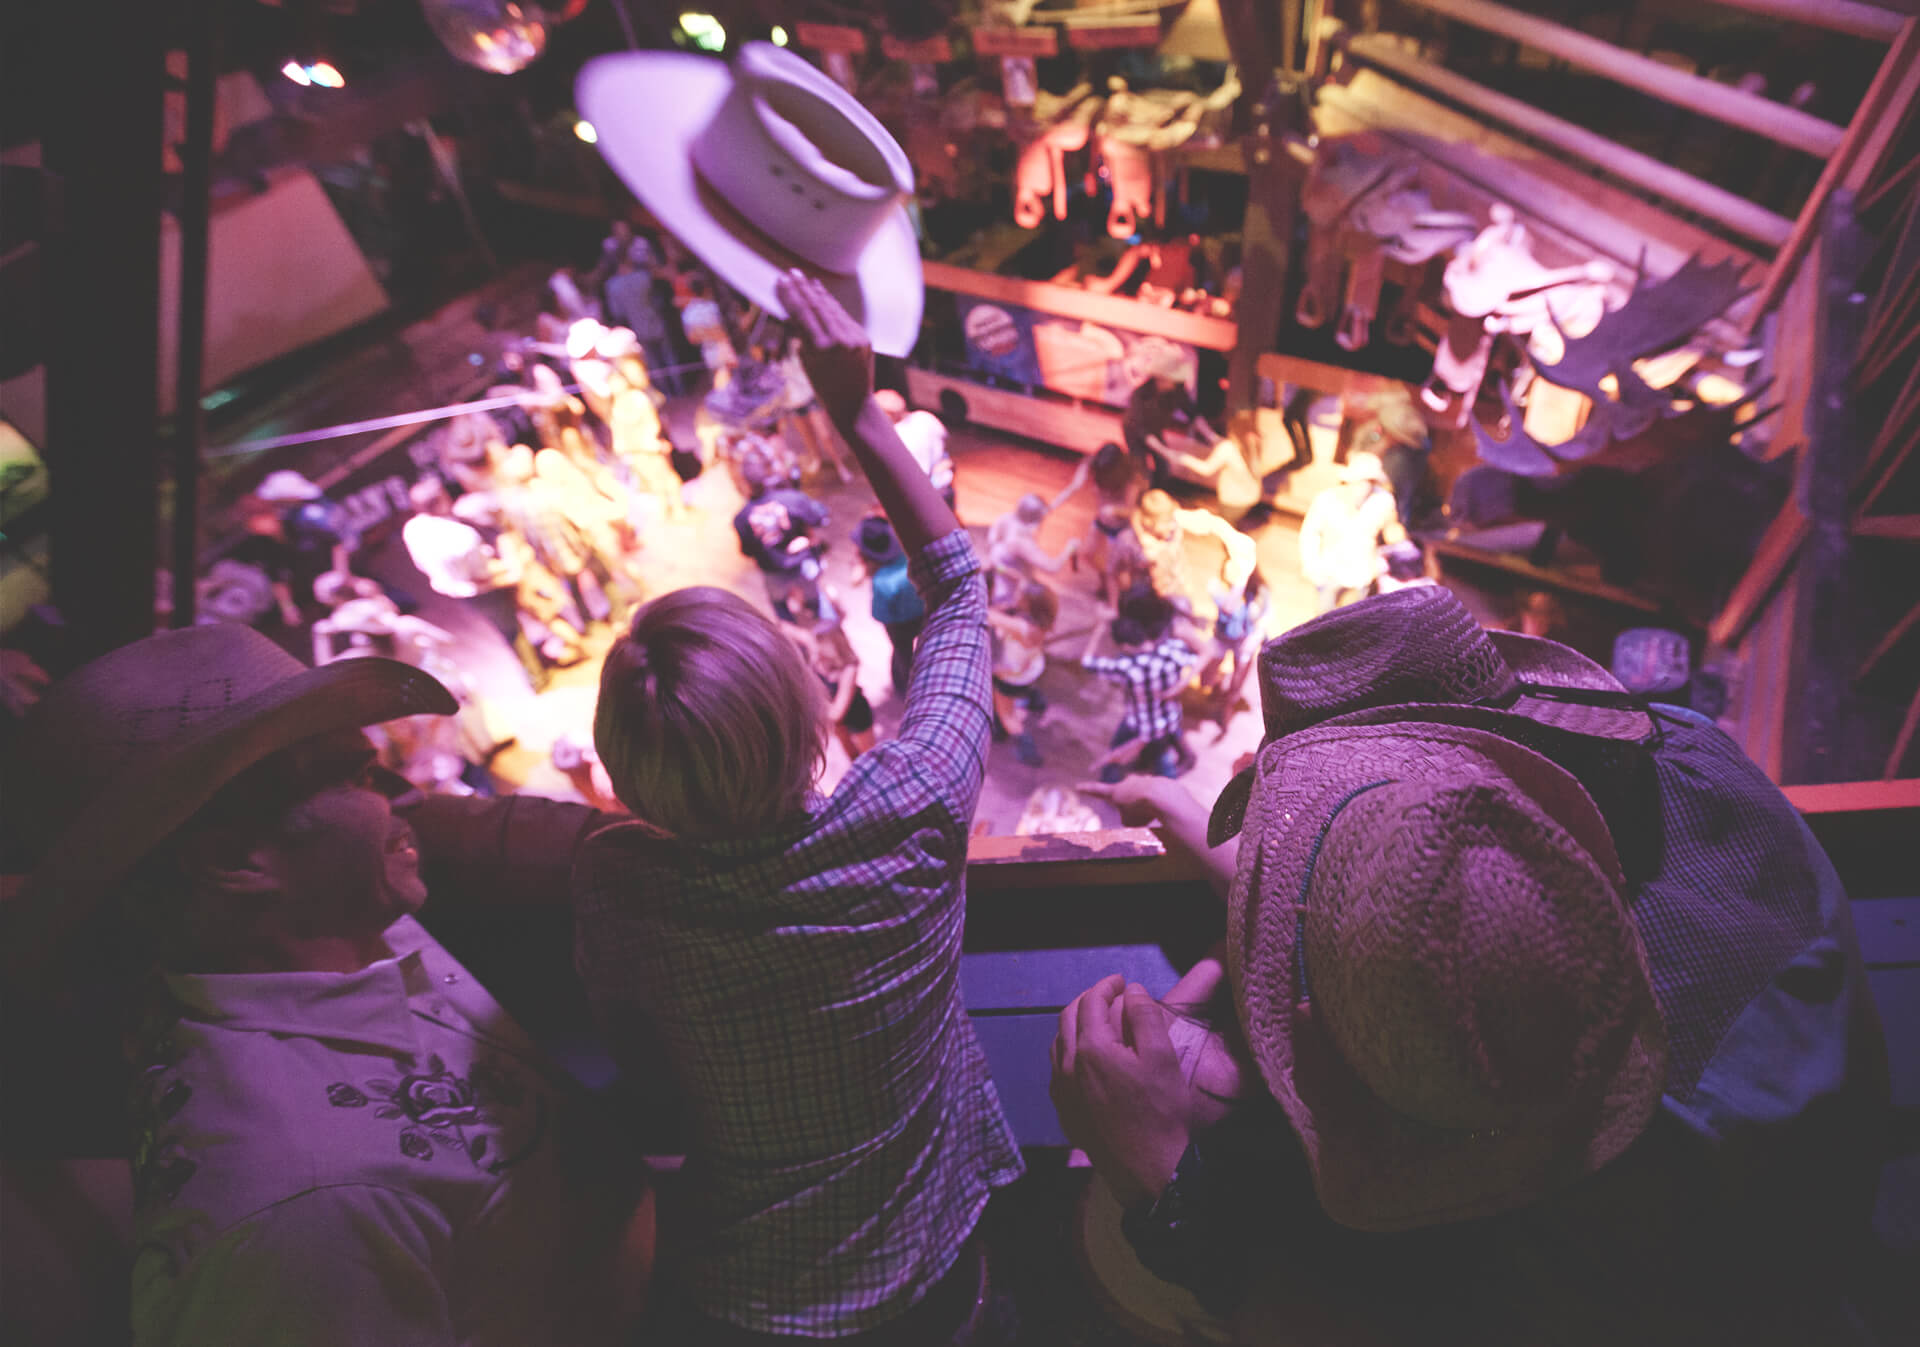 Go out on the town and get into the Calgary nightlife scene.